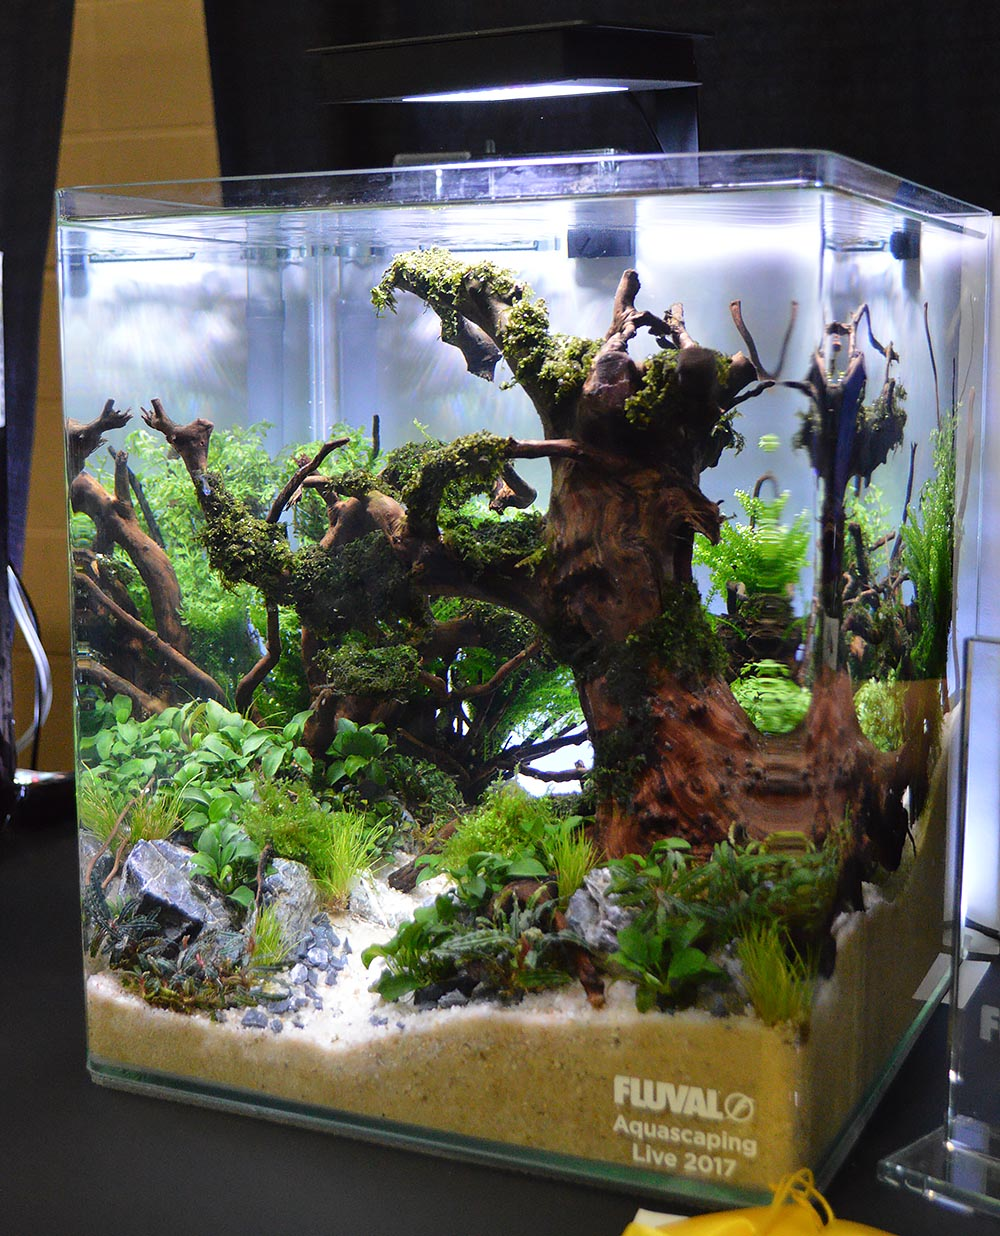 3rd Place Aquascape by Vang Thao